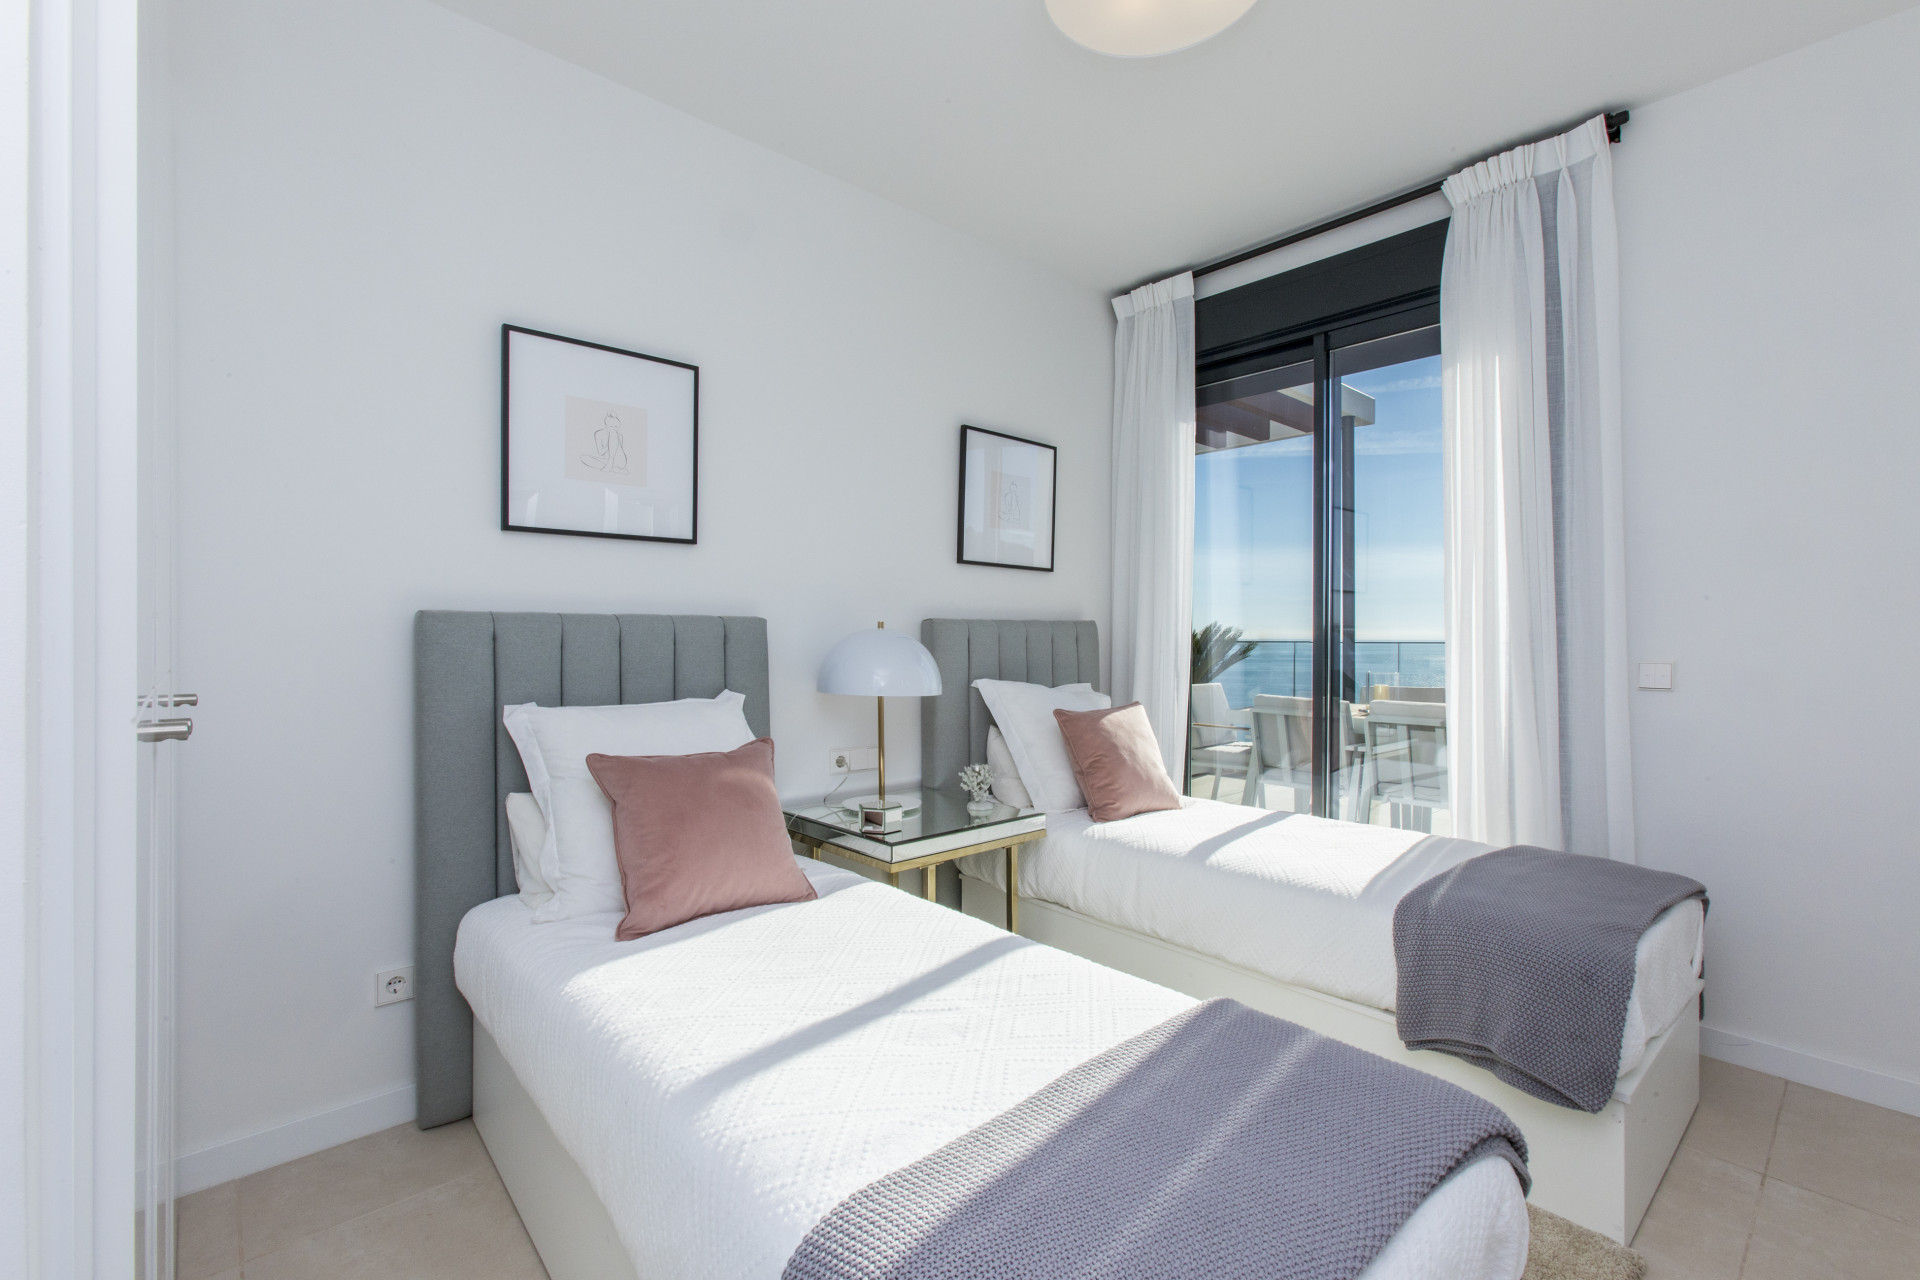 Fabulous new apartment with sea views in Fuengirola